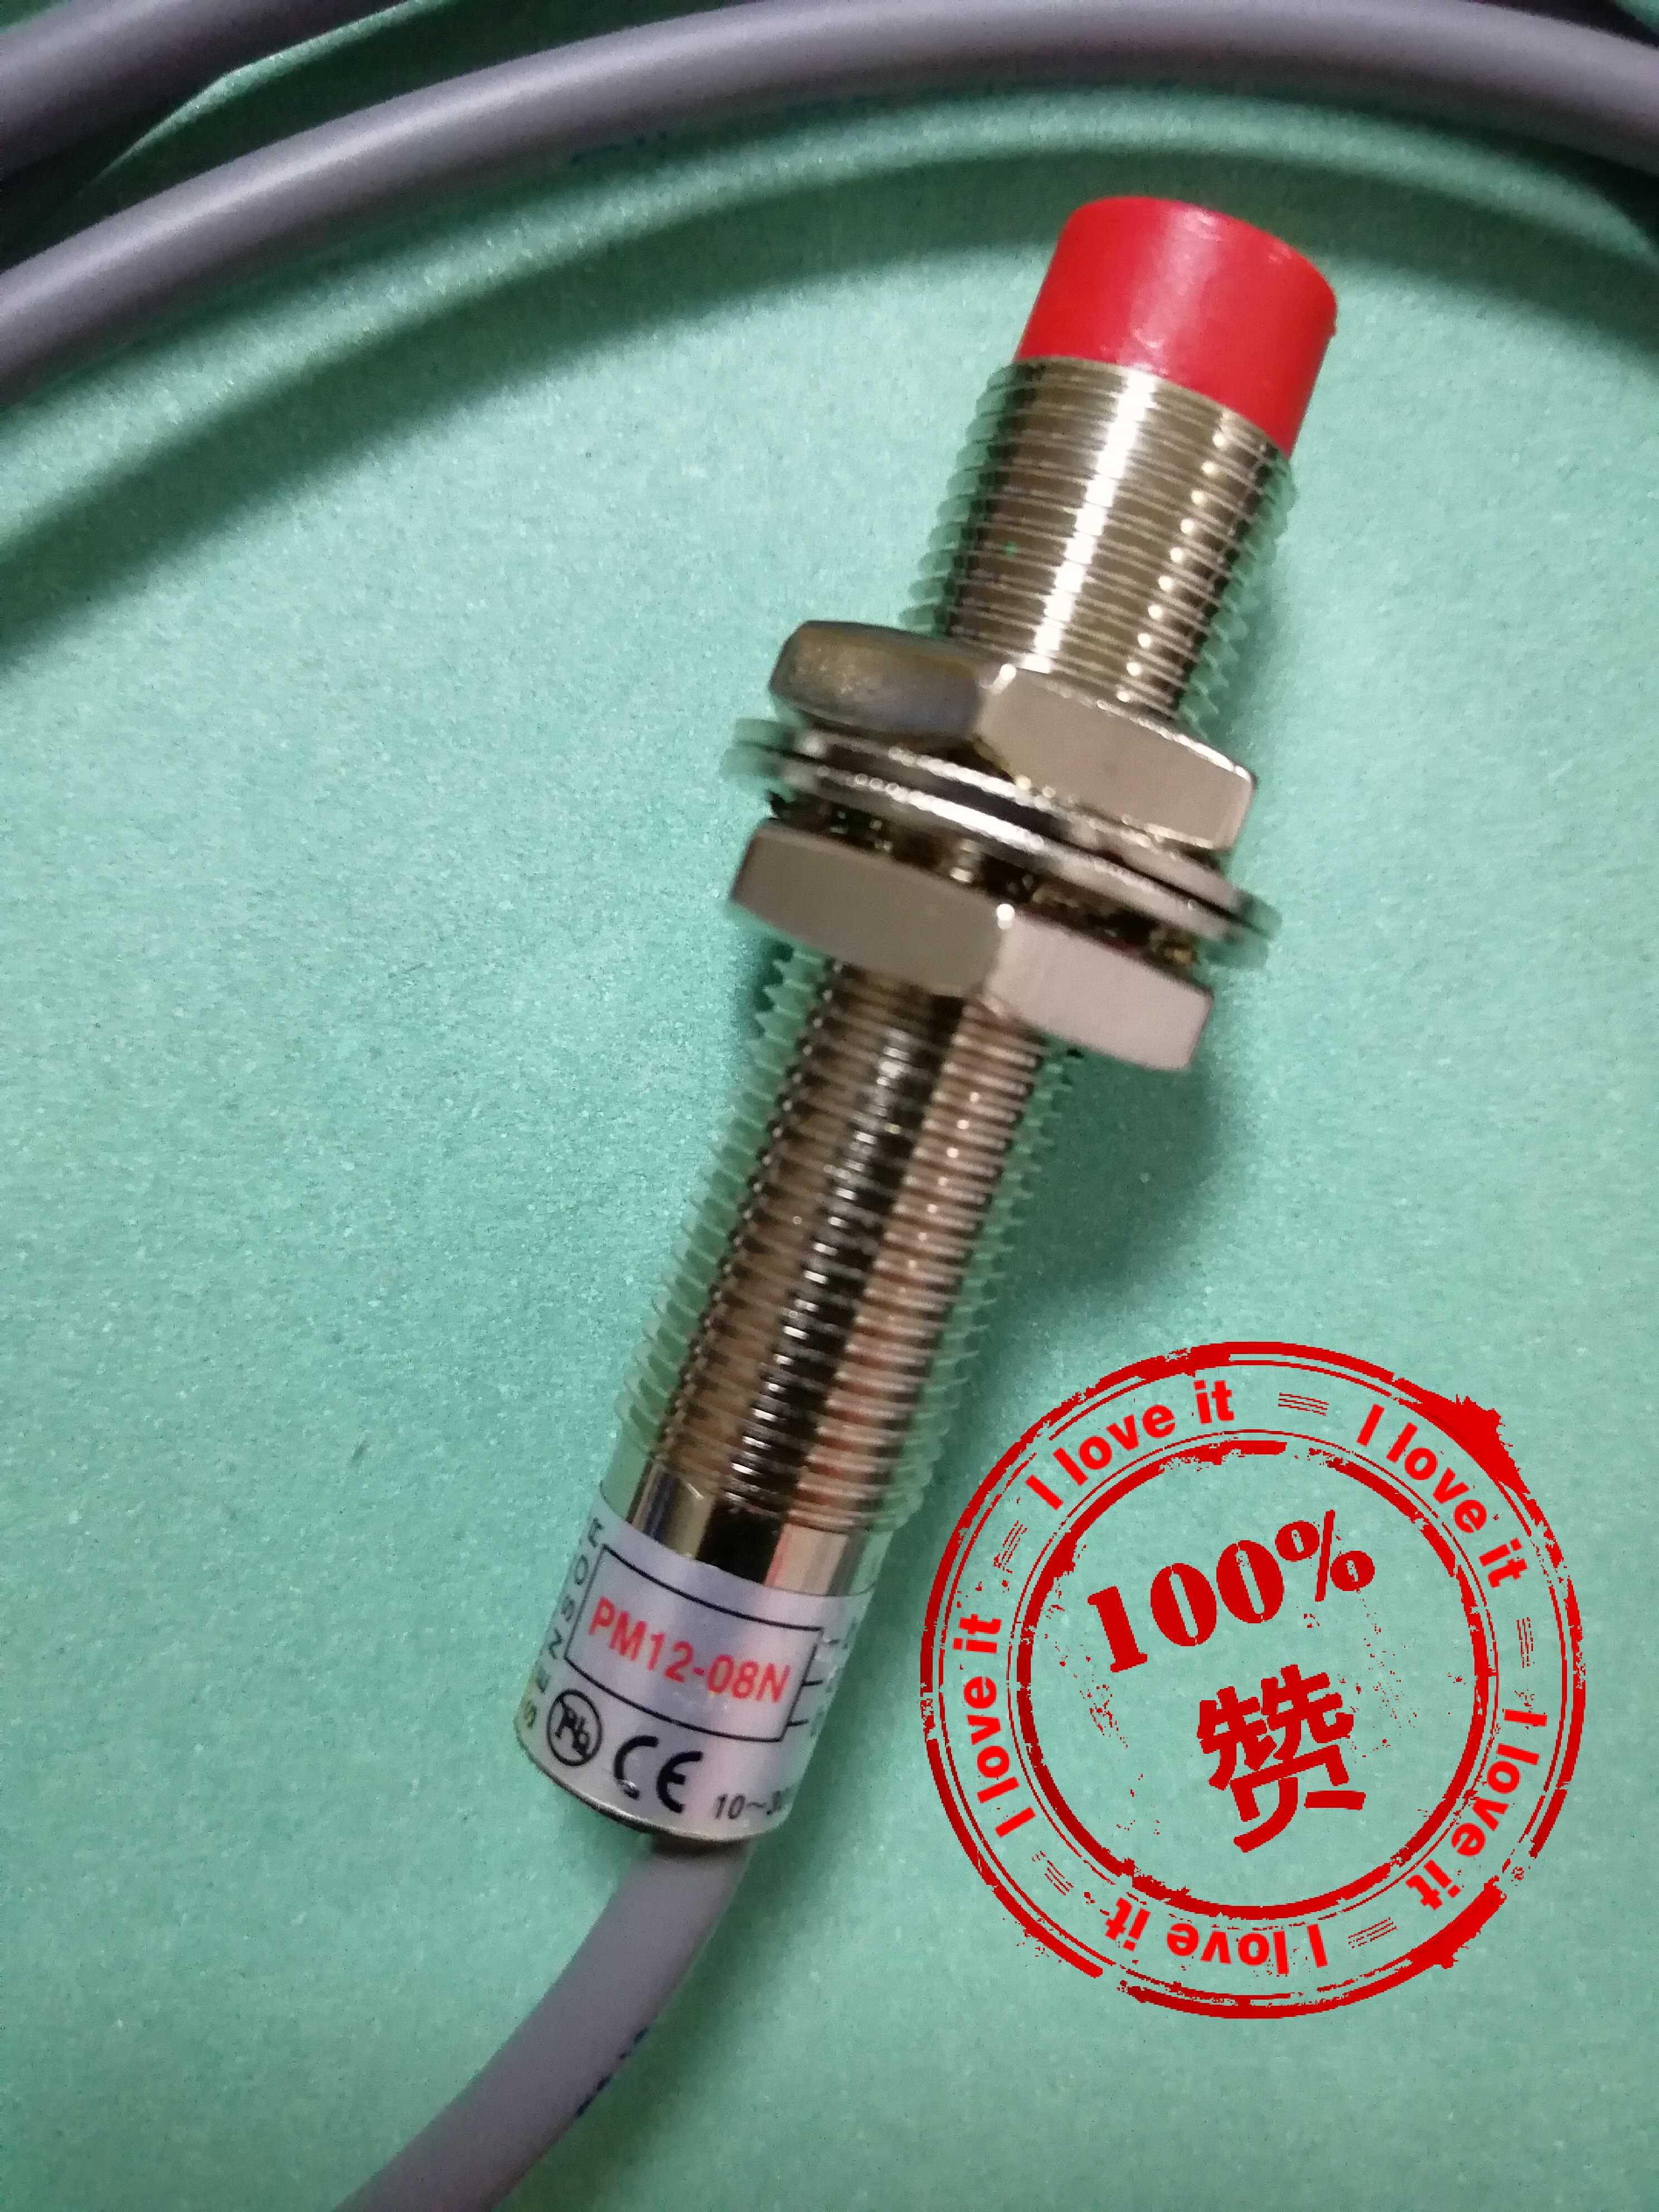 100 % original imported PM 12-08n close to switch PM12-08N 8 large100 % original imported PM 12-08n close to switch PM12-08N 8 large